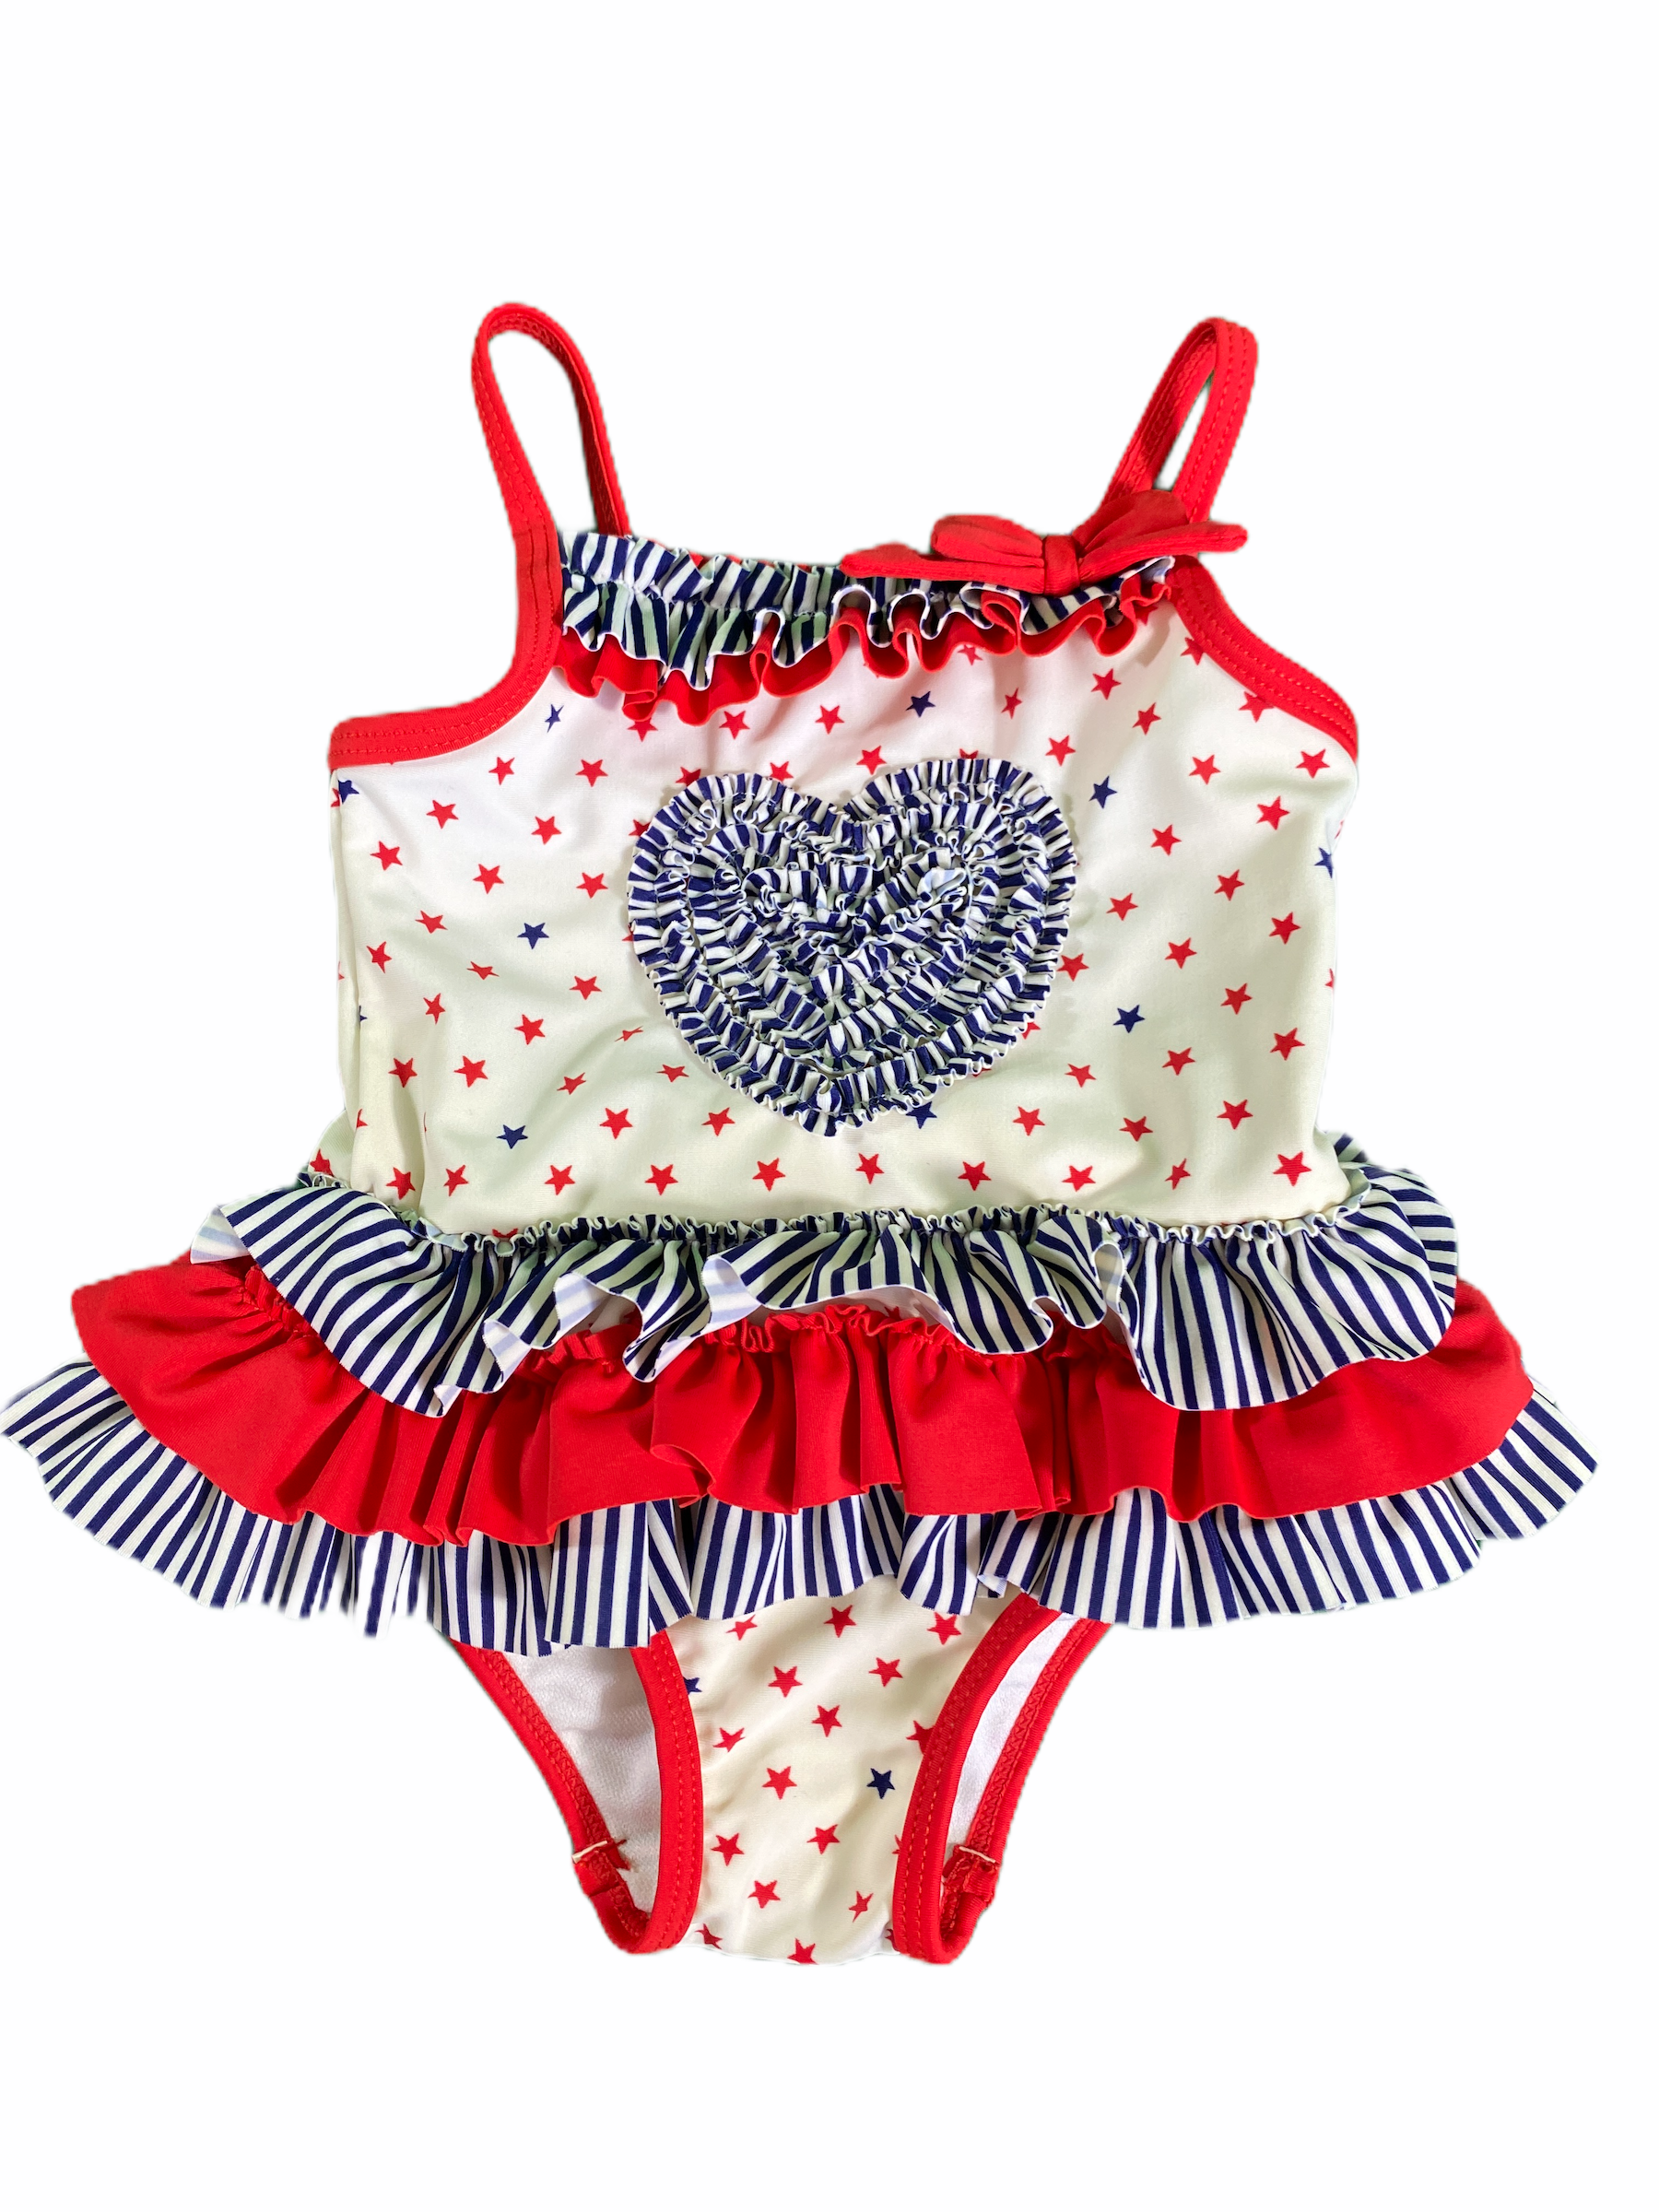 Little Me Red White & Blue Swim suit (12M Girls)